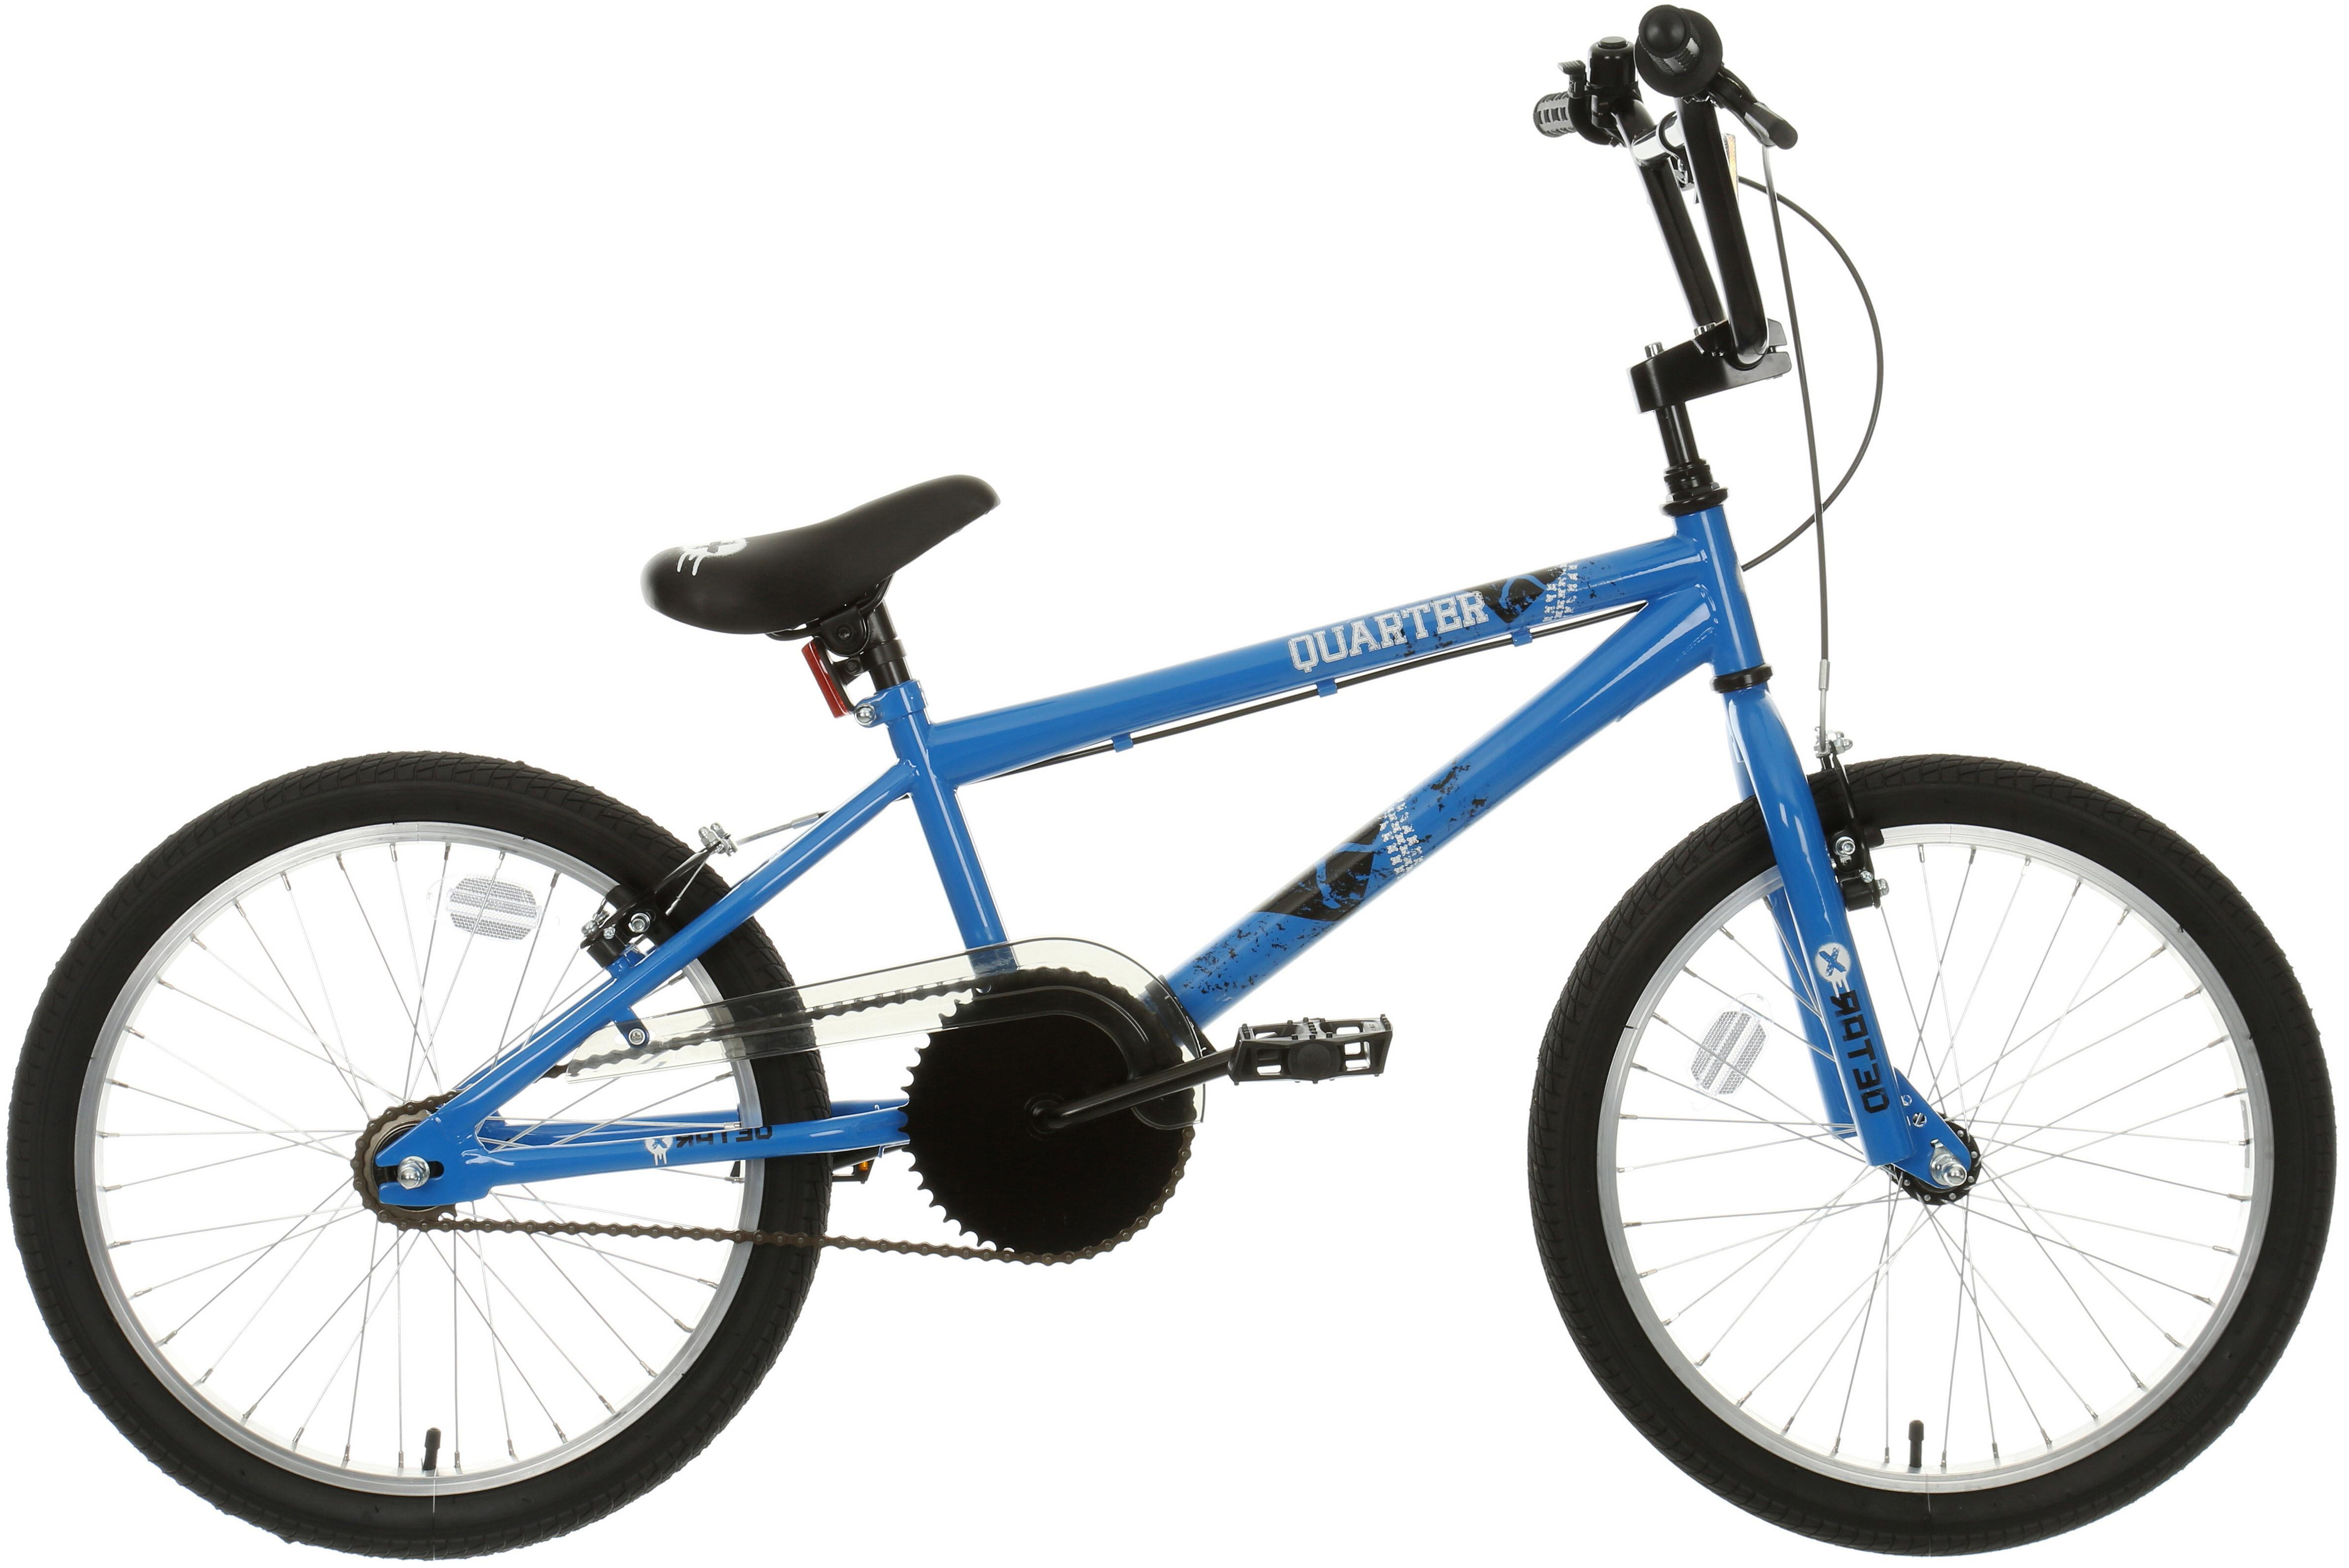 X Rated Quarter BMX Bike - 20 inch Wheel